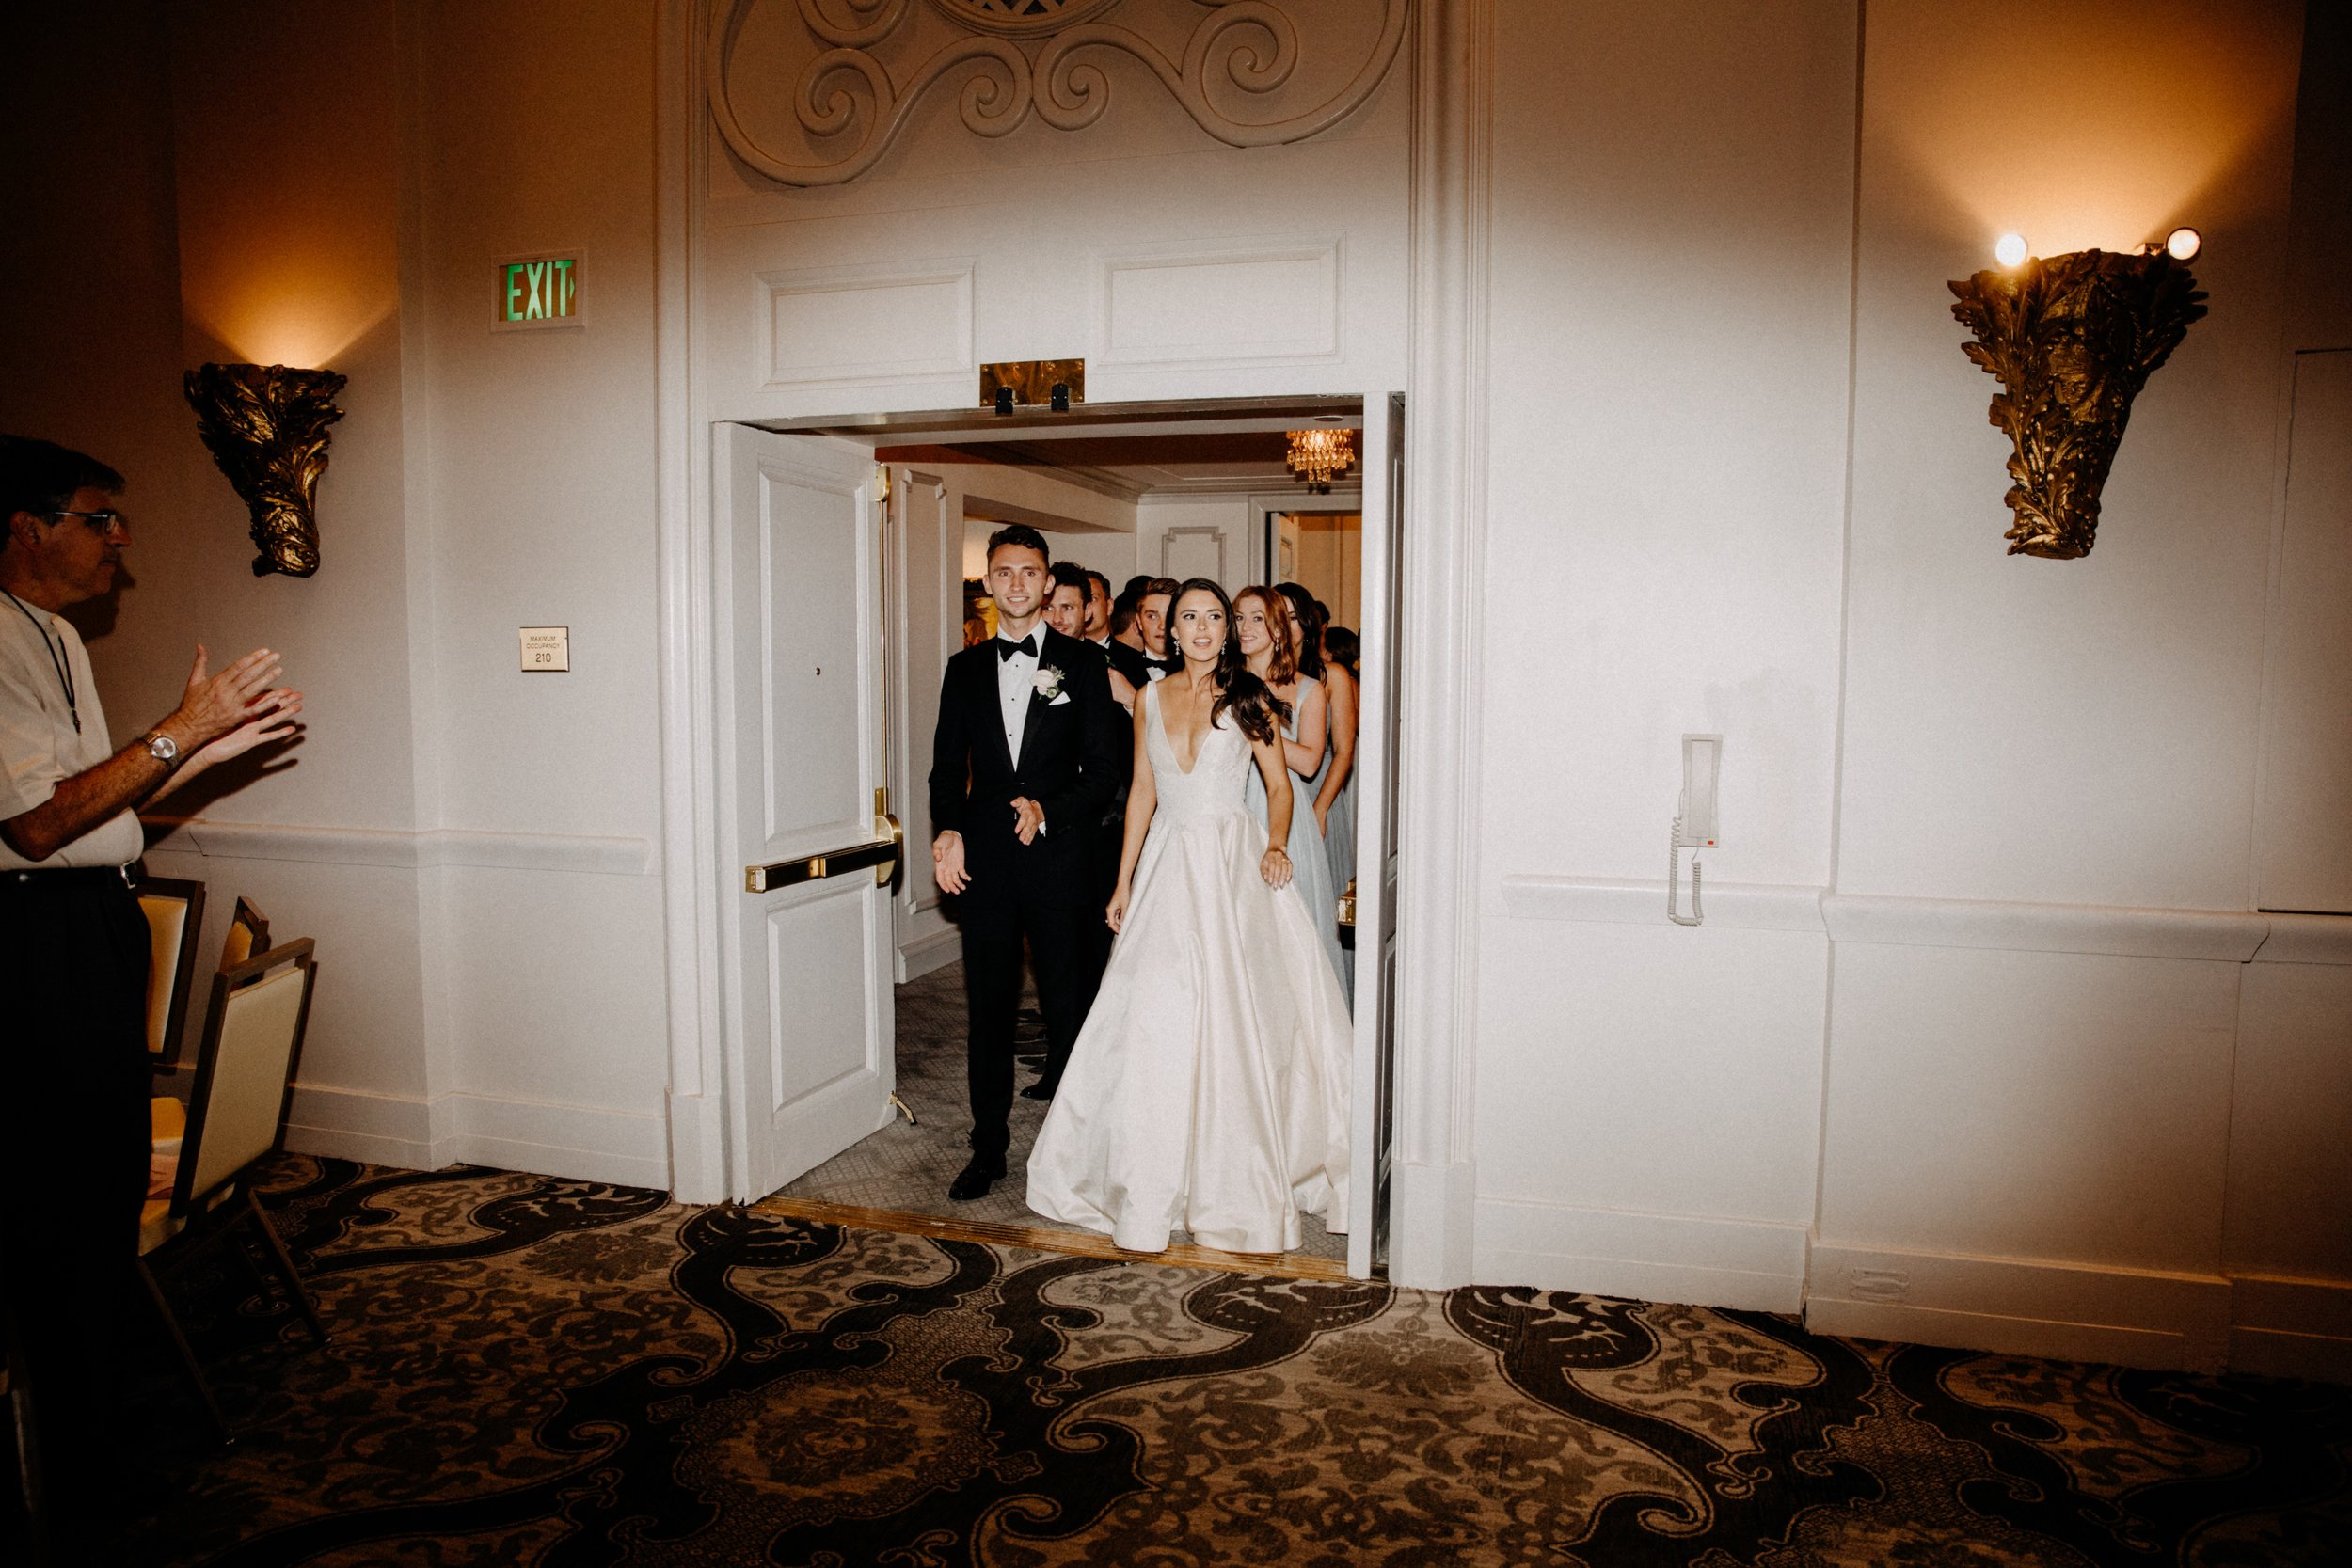 st-anthony-hotel-wedding-photography-10127san-antonio.JPG